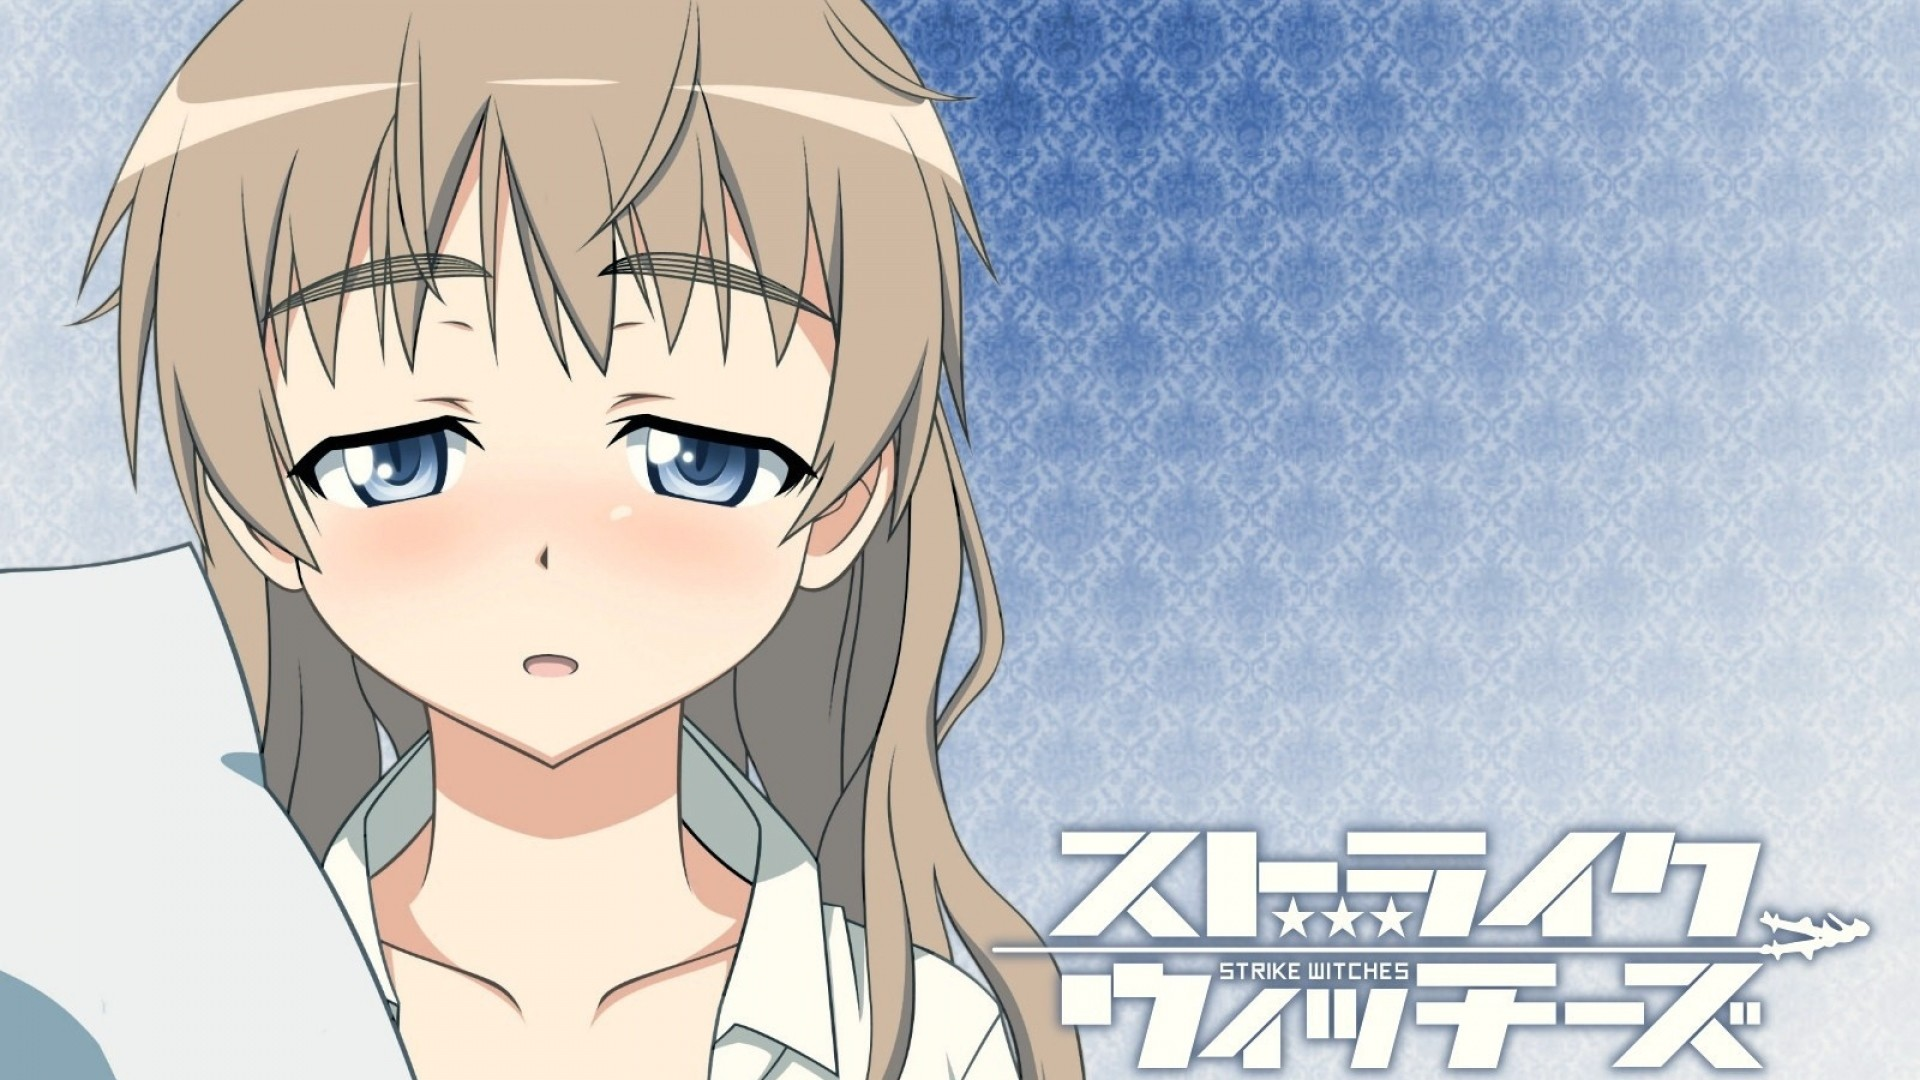 1920x1080  Wallpaper strike witches, lynette bishop, girl, bangs, sadness